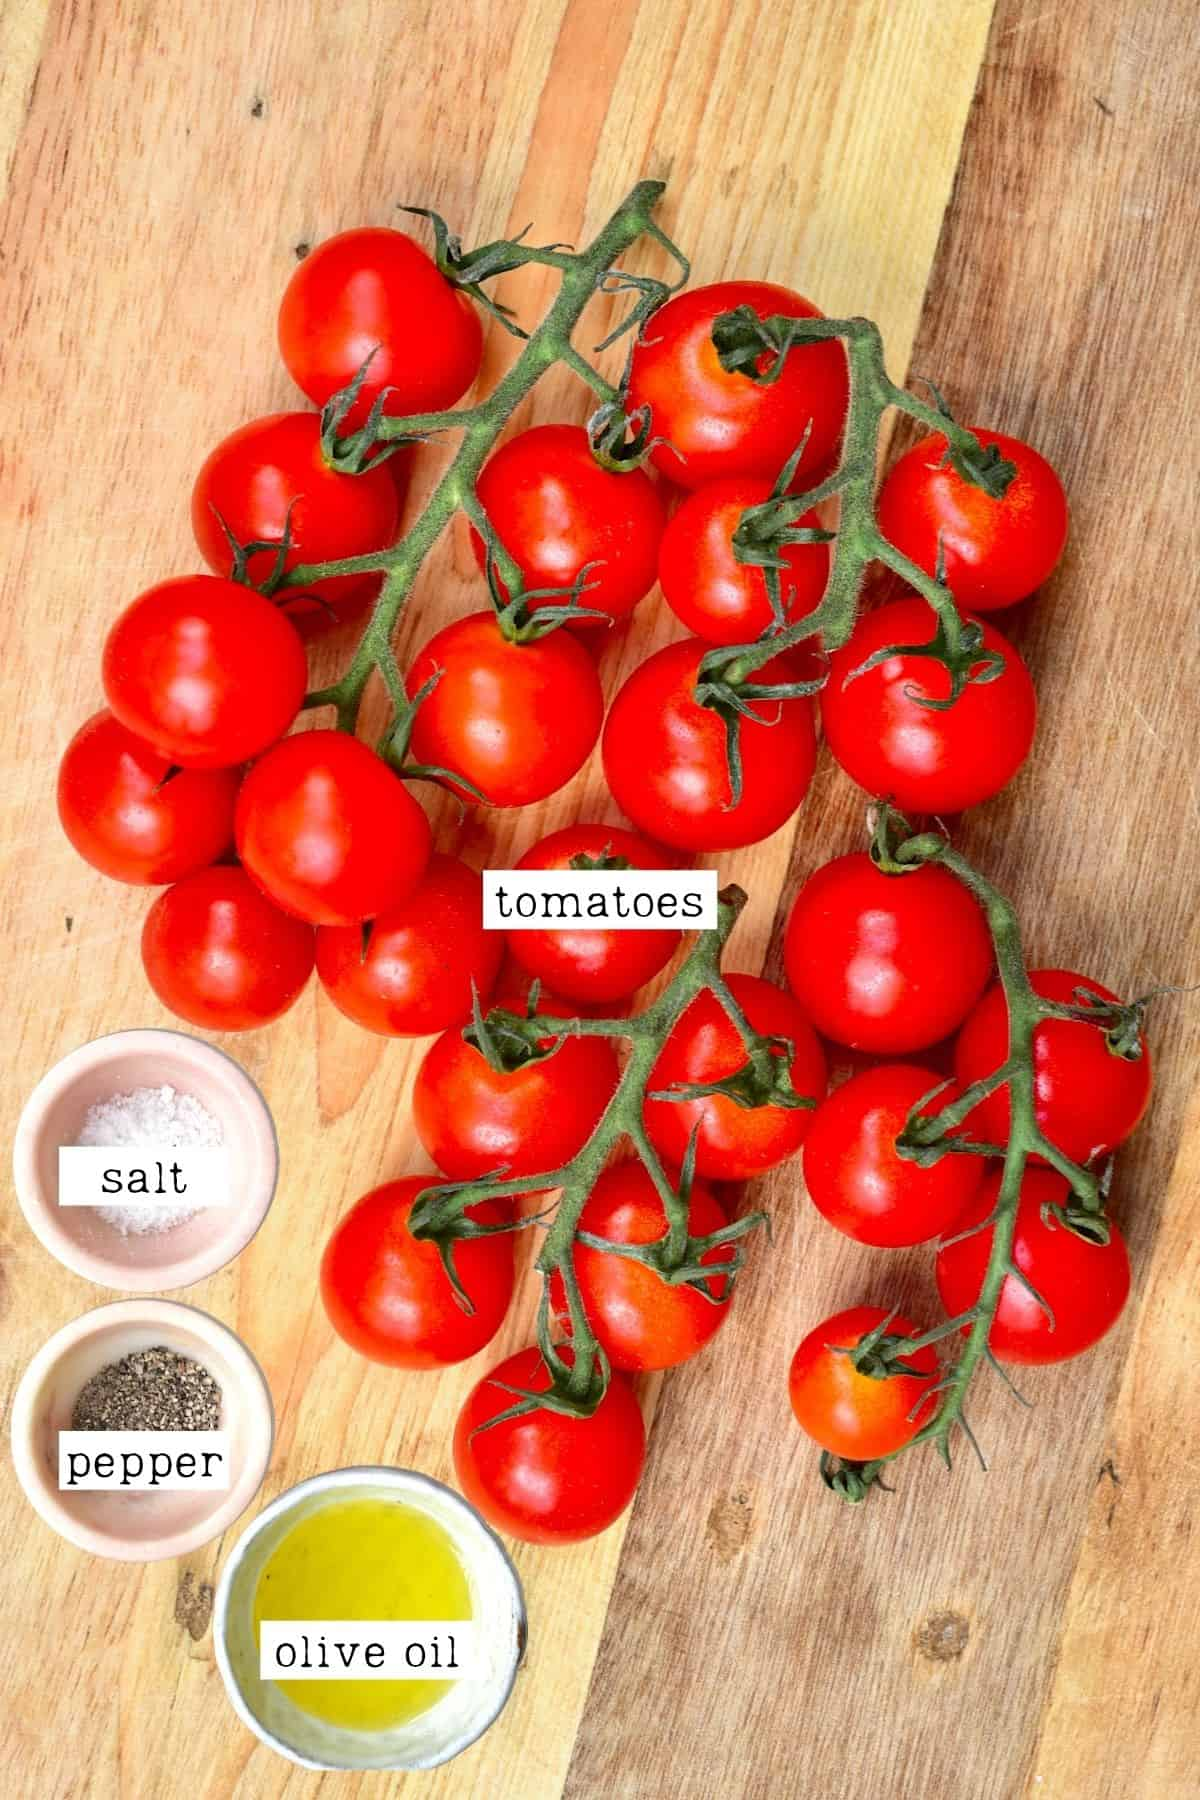 Ingredients for roasted tomatoes